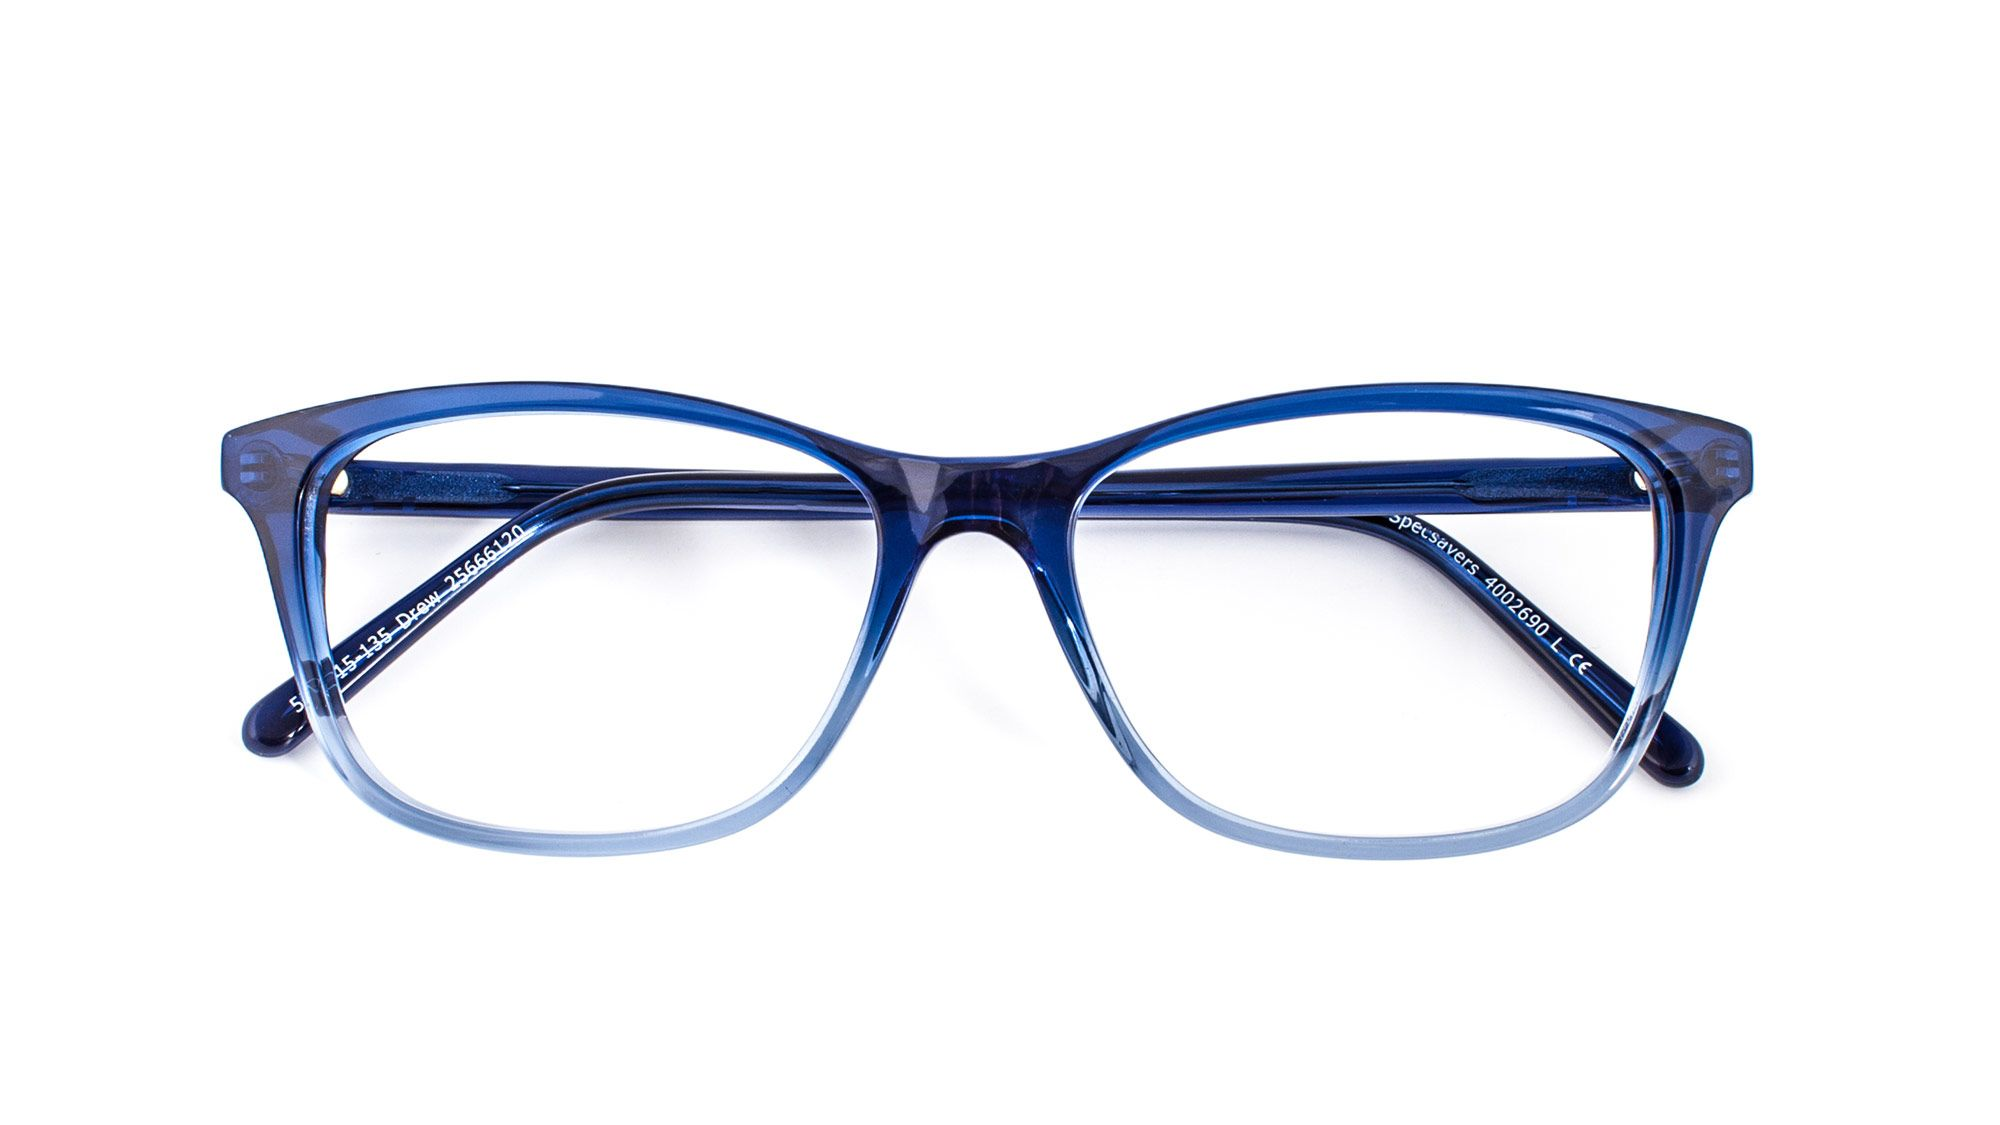 designer glasses online  Specsavers Optometrists - Designer Glasses, Sunglasses, Contact ...